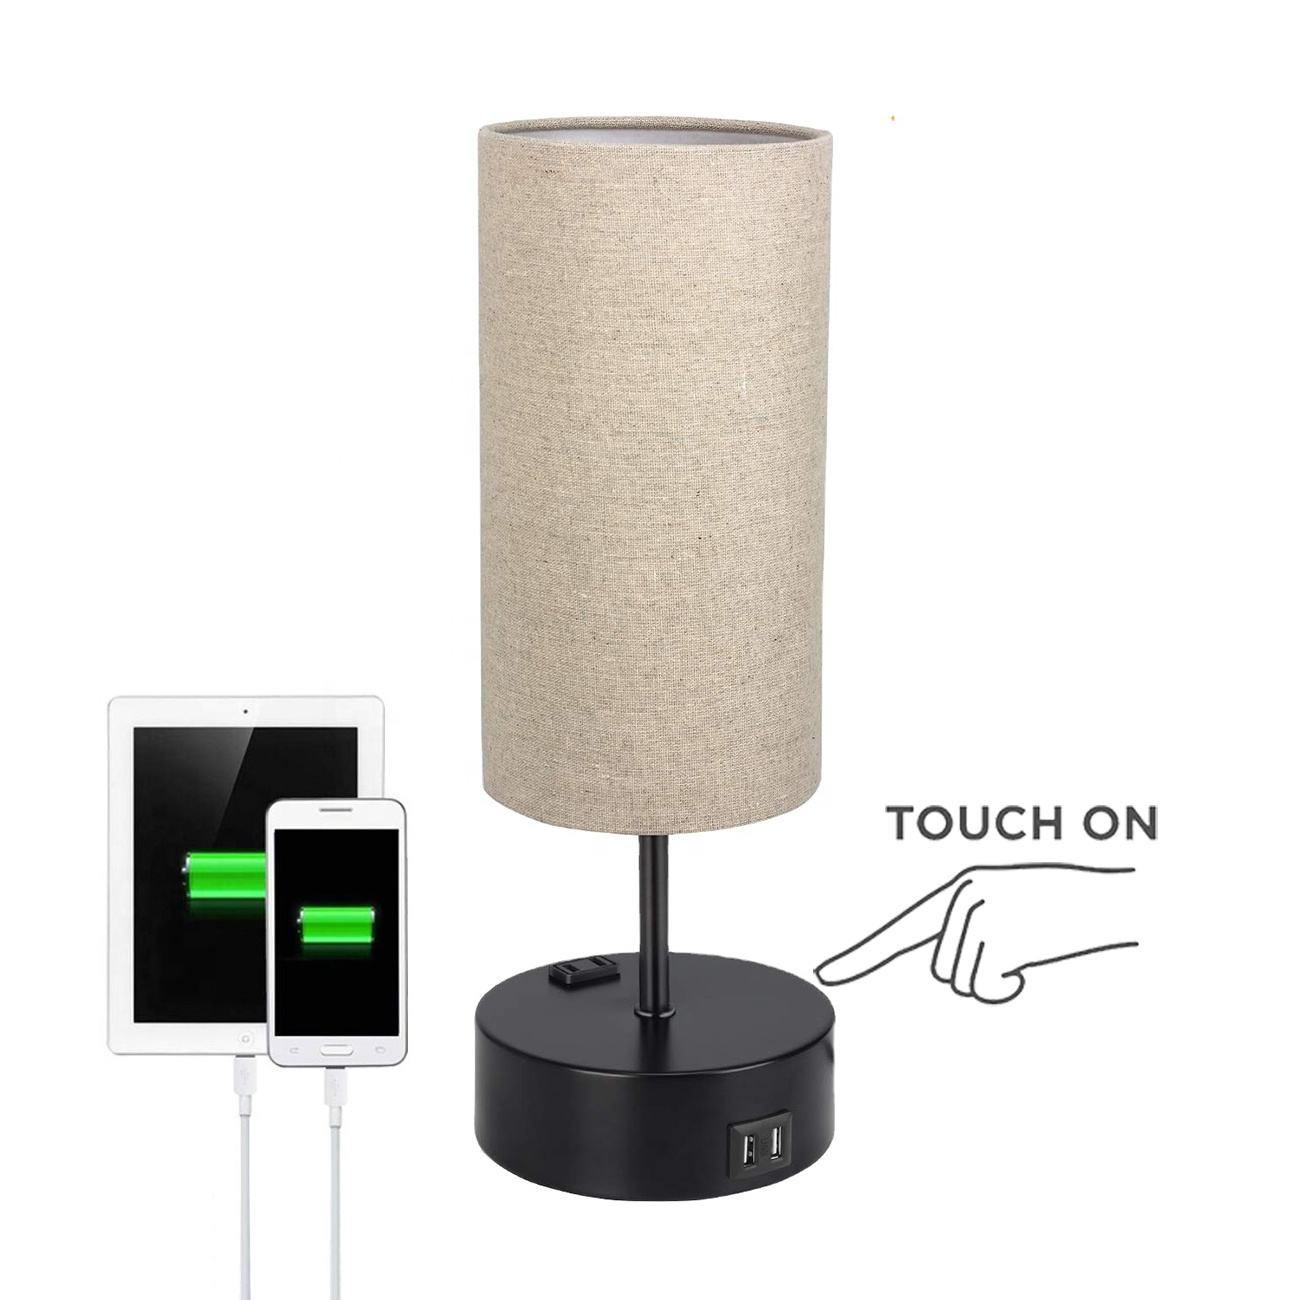 JLT-25515B Modern 3 Way Dimmable Touch Table Lamp With 2 USB Ports AC Power Outlet for Bedroom Bedside